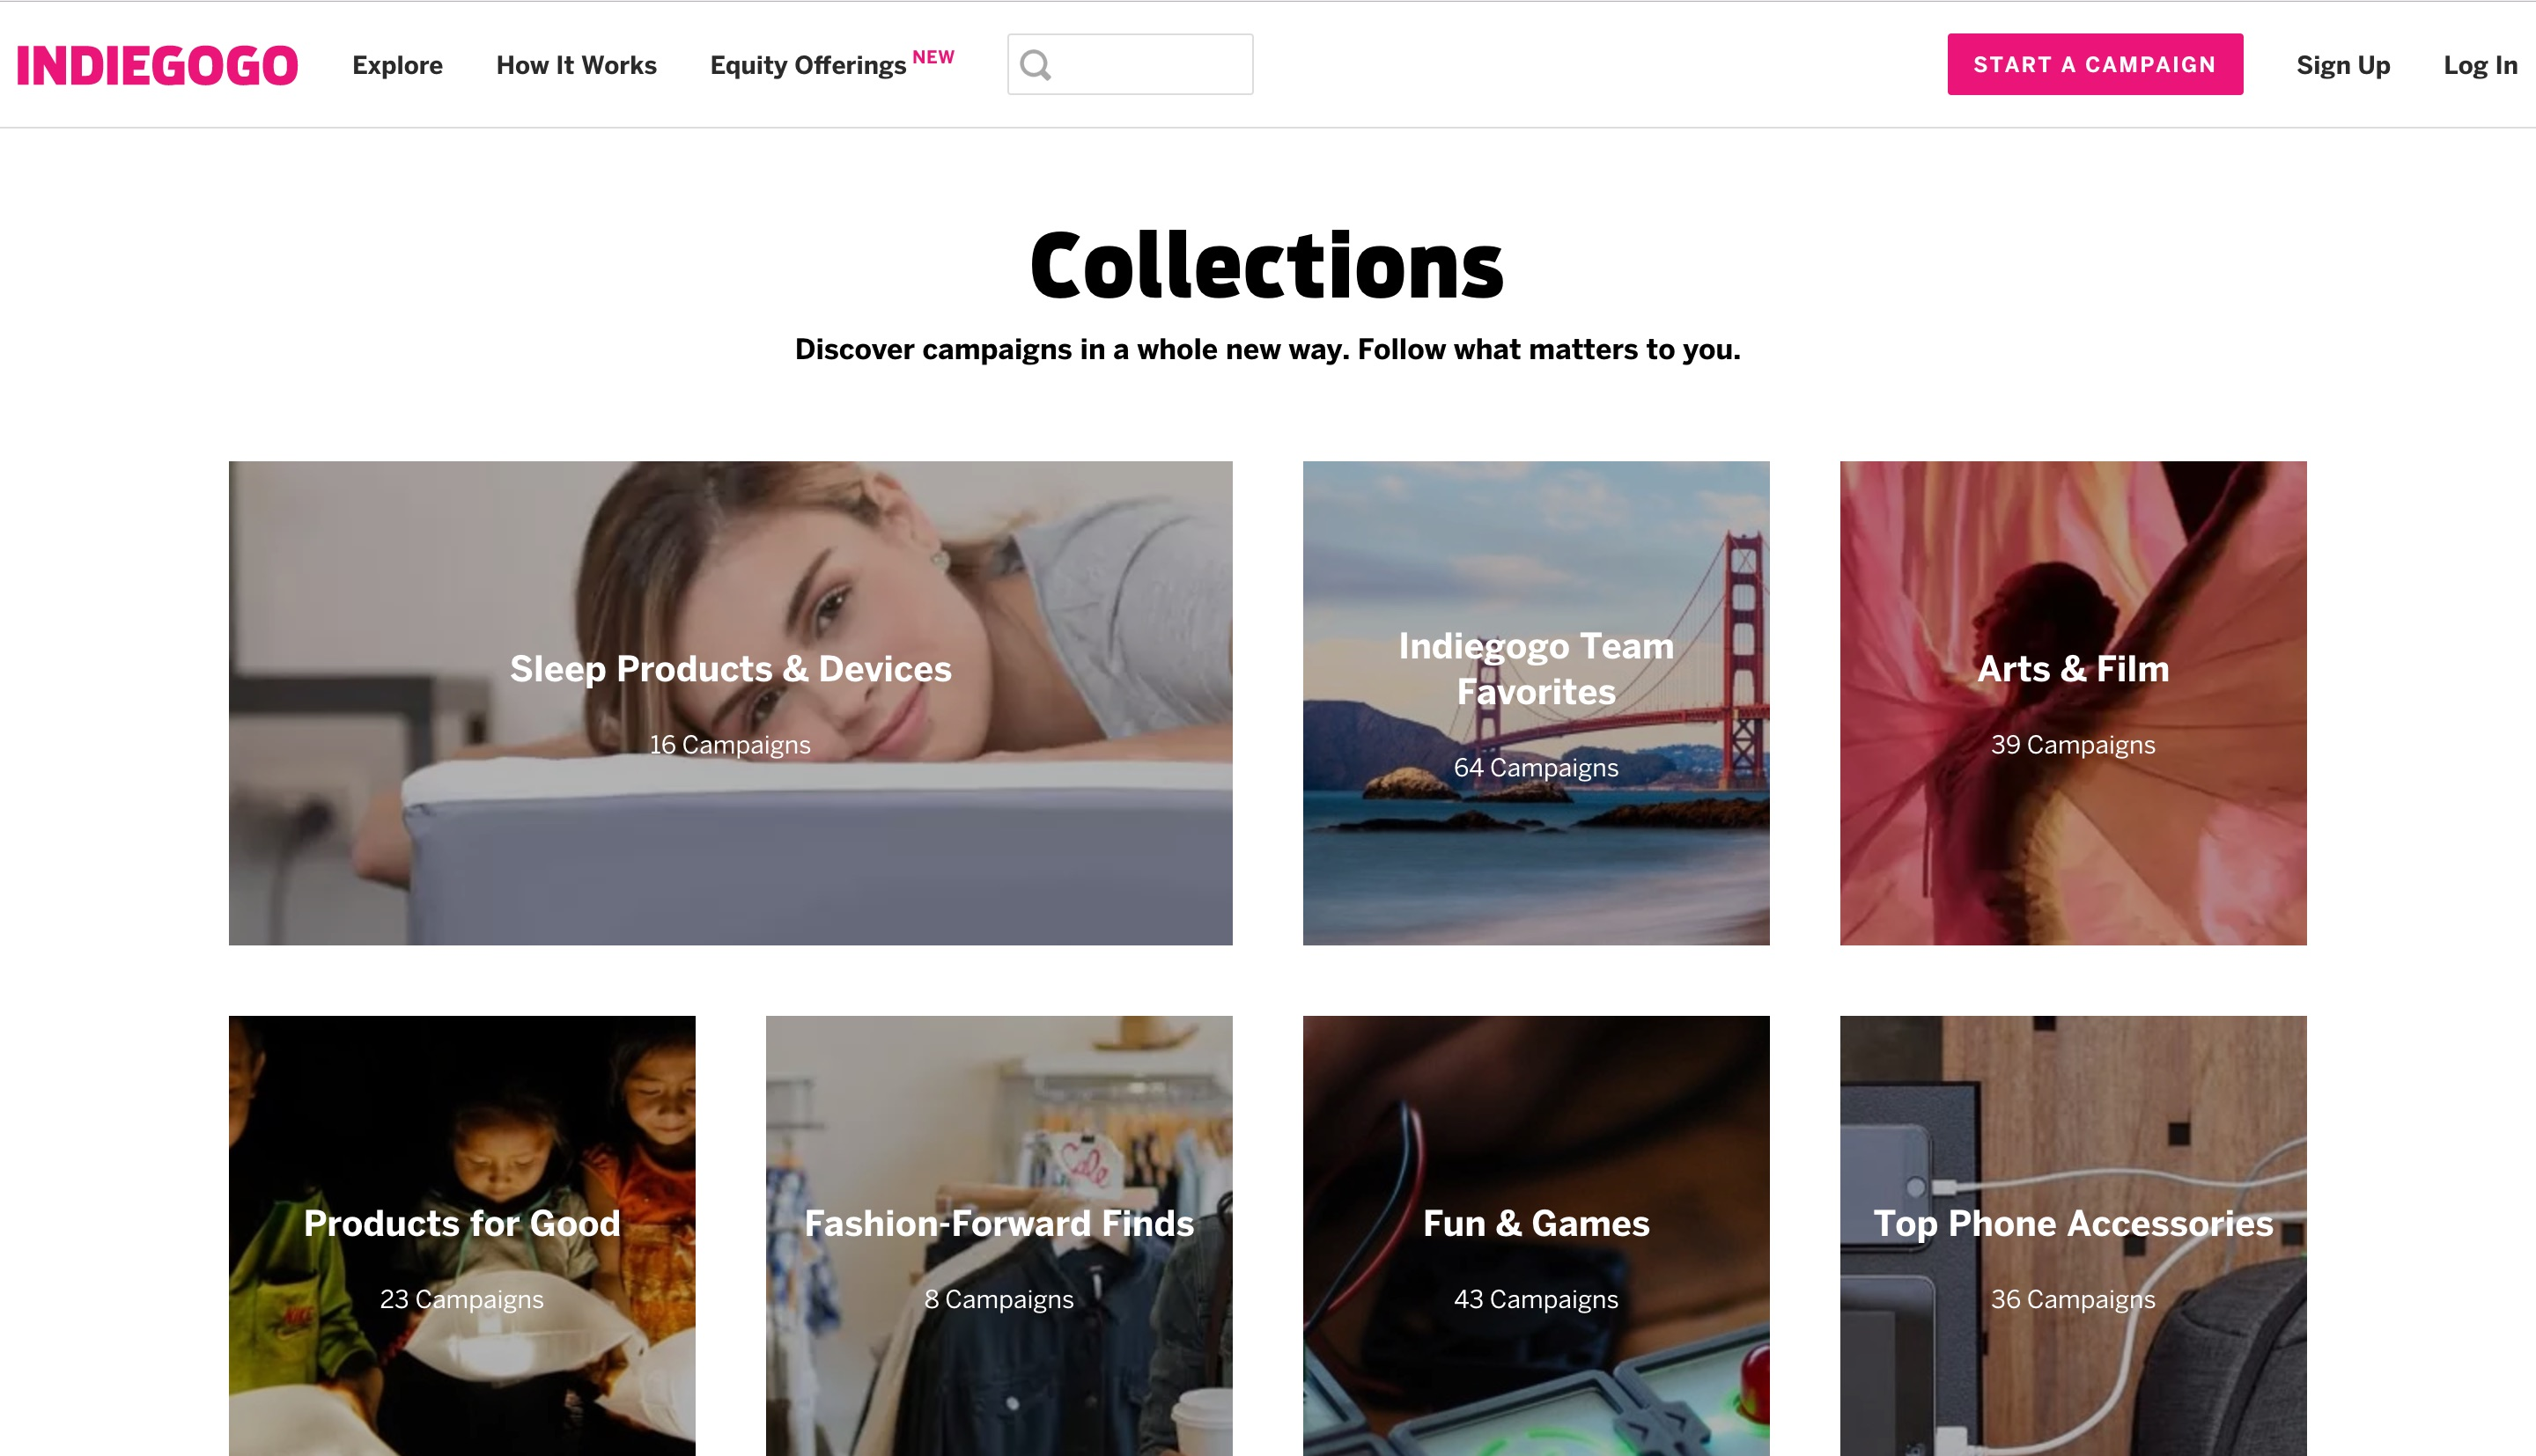 this is a screenshot of a crowdfunding platform before implementing in-app messaging. indiegogo, pictured, introducted a new feature called collections. this is a screenshot of the collections screen before coach marks.